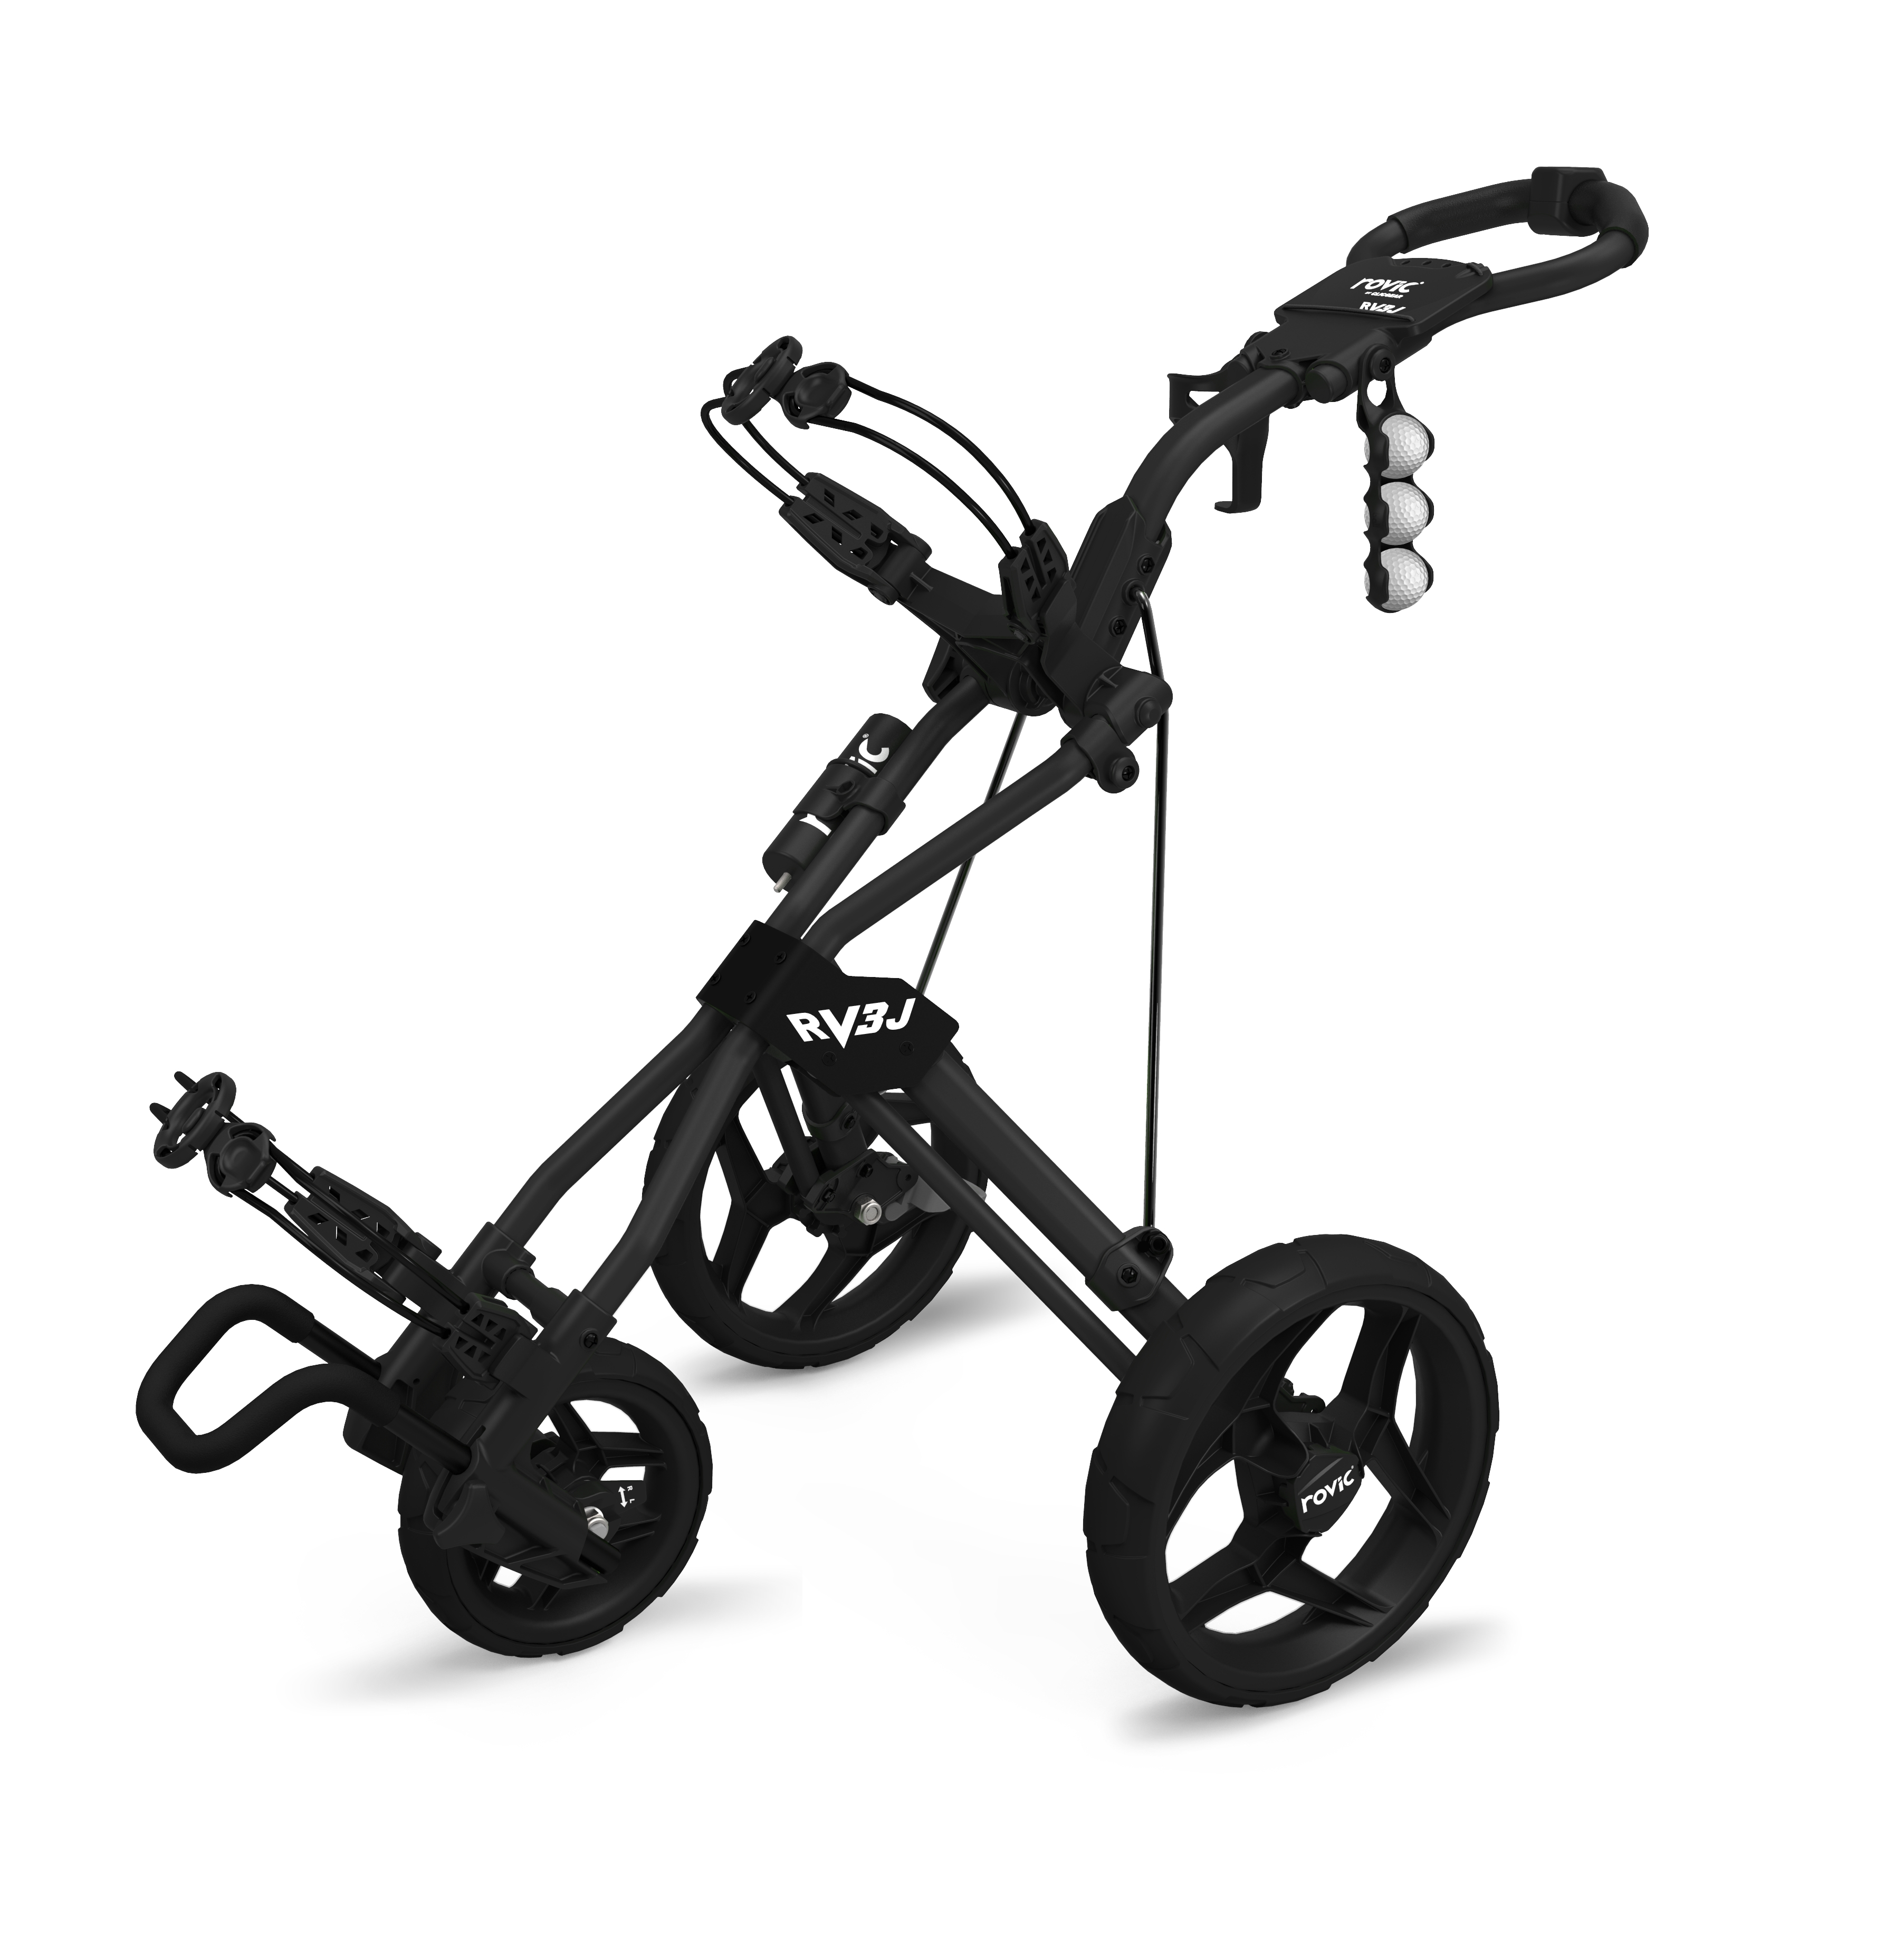 Rovic by Clicgear RV3J Junior 3-Wheel Golf Push Cart (Charcoal Black)